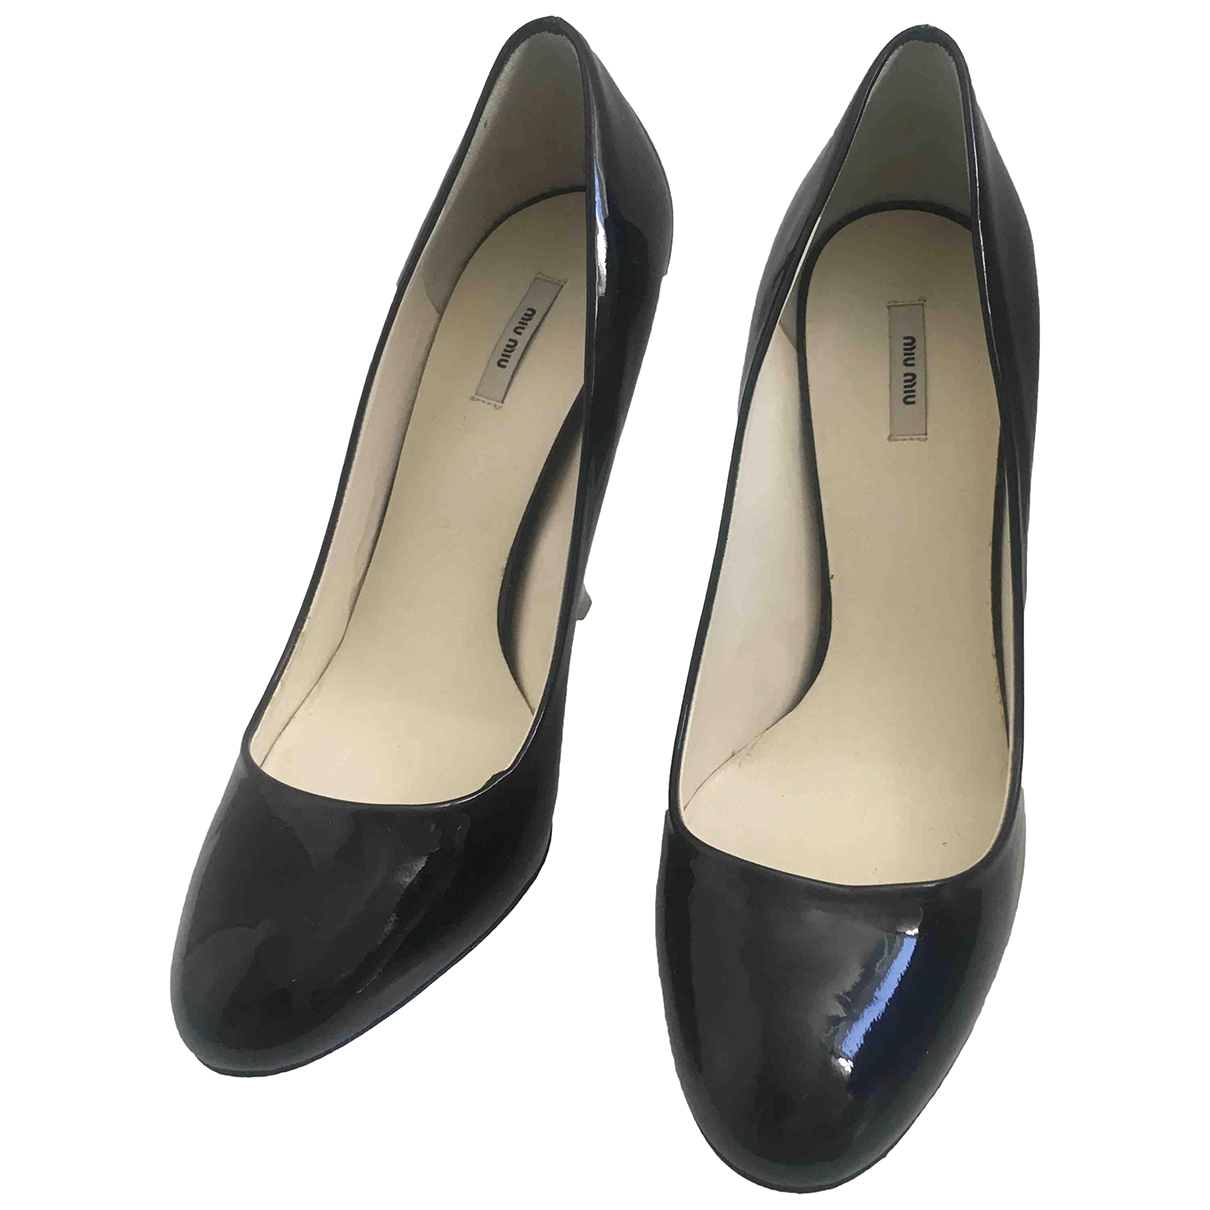 Miu Miu \N Black Patent leather Heels for Women 36 EU